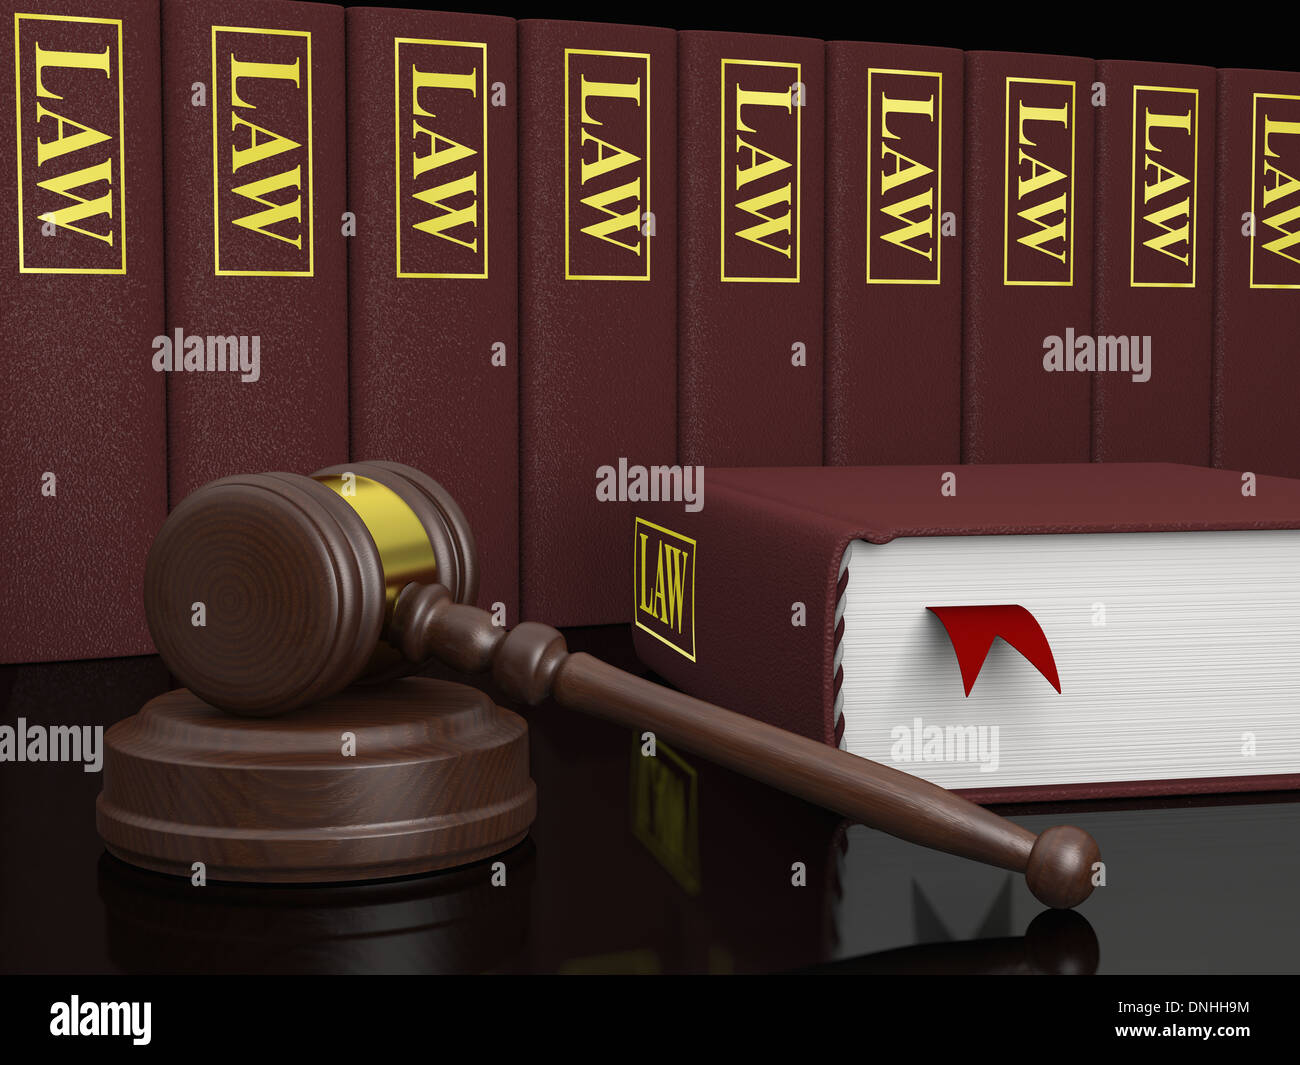 Gavel and law books, symbols of law and legal literature - Stock Image